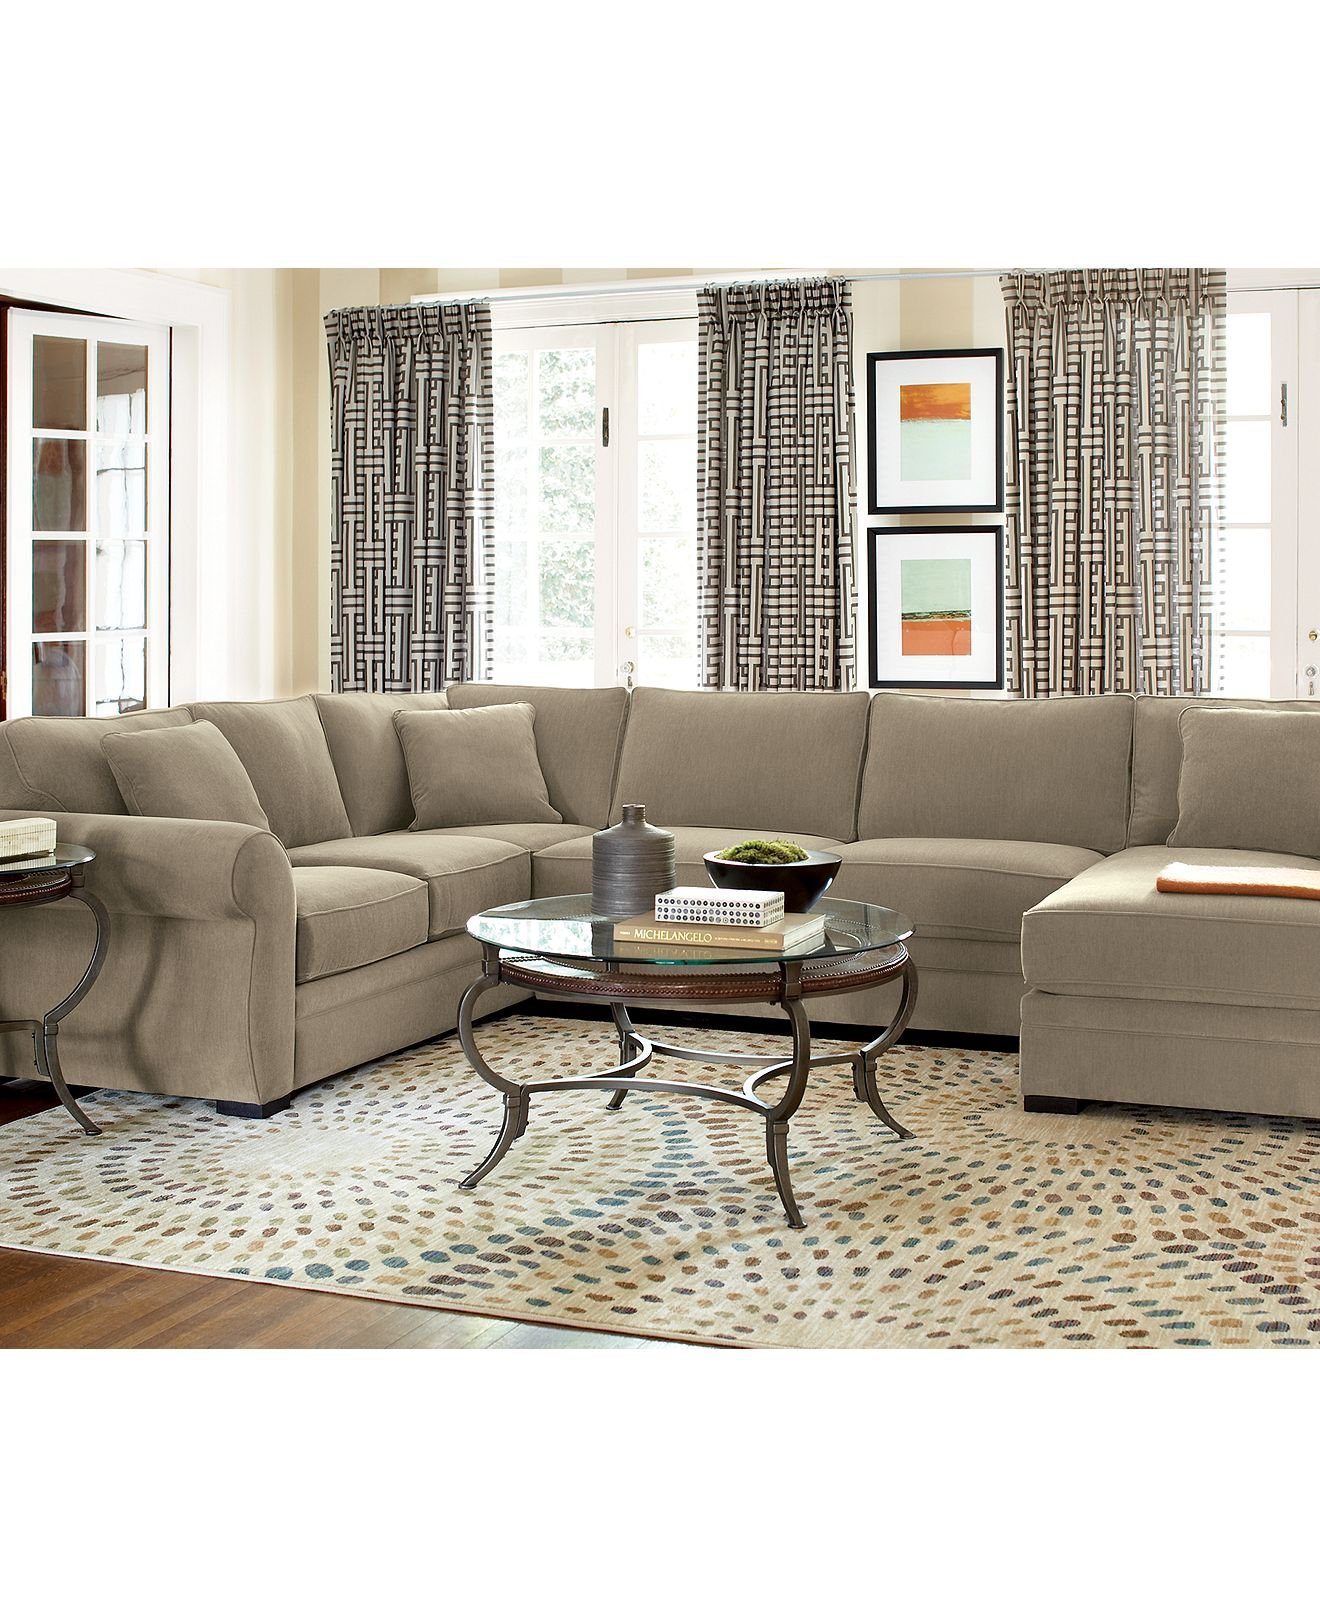 Devon living room furniture sets from macy 39 s the house for Sectional living room sets